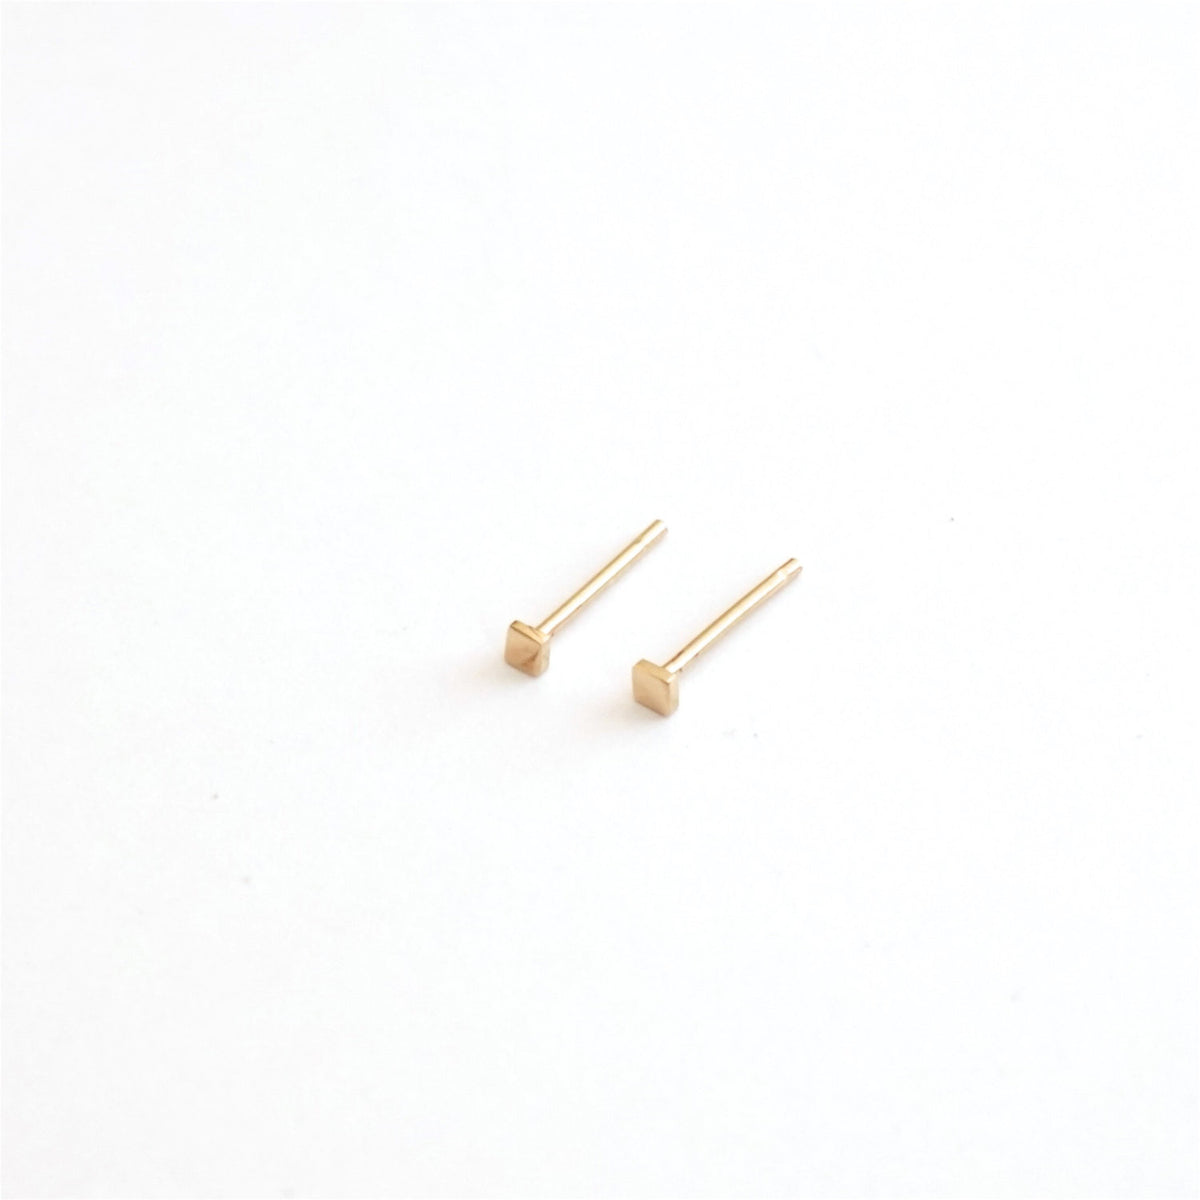 14k Gold 2mm Square Stud Earrings 0151 - Virginia Wynne Designs